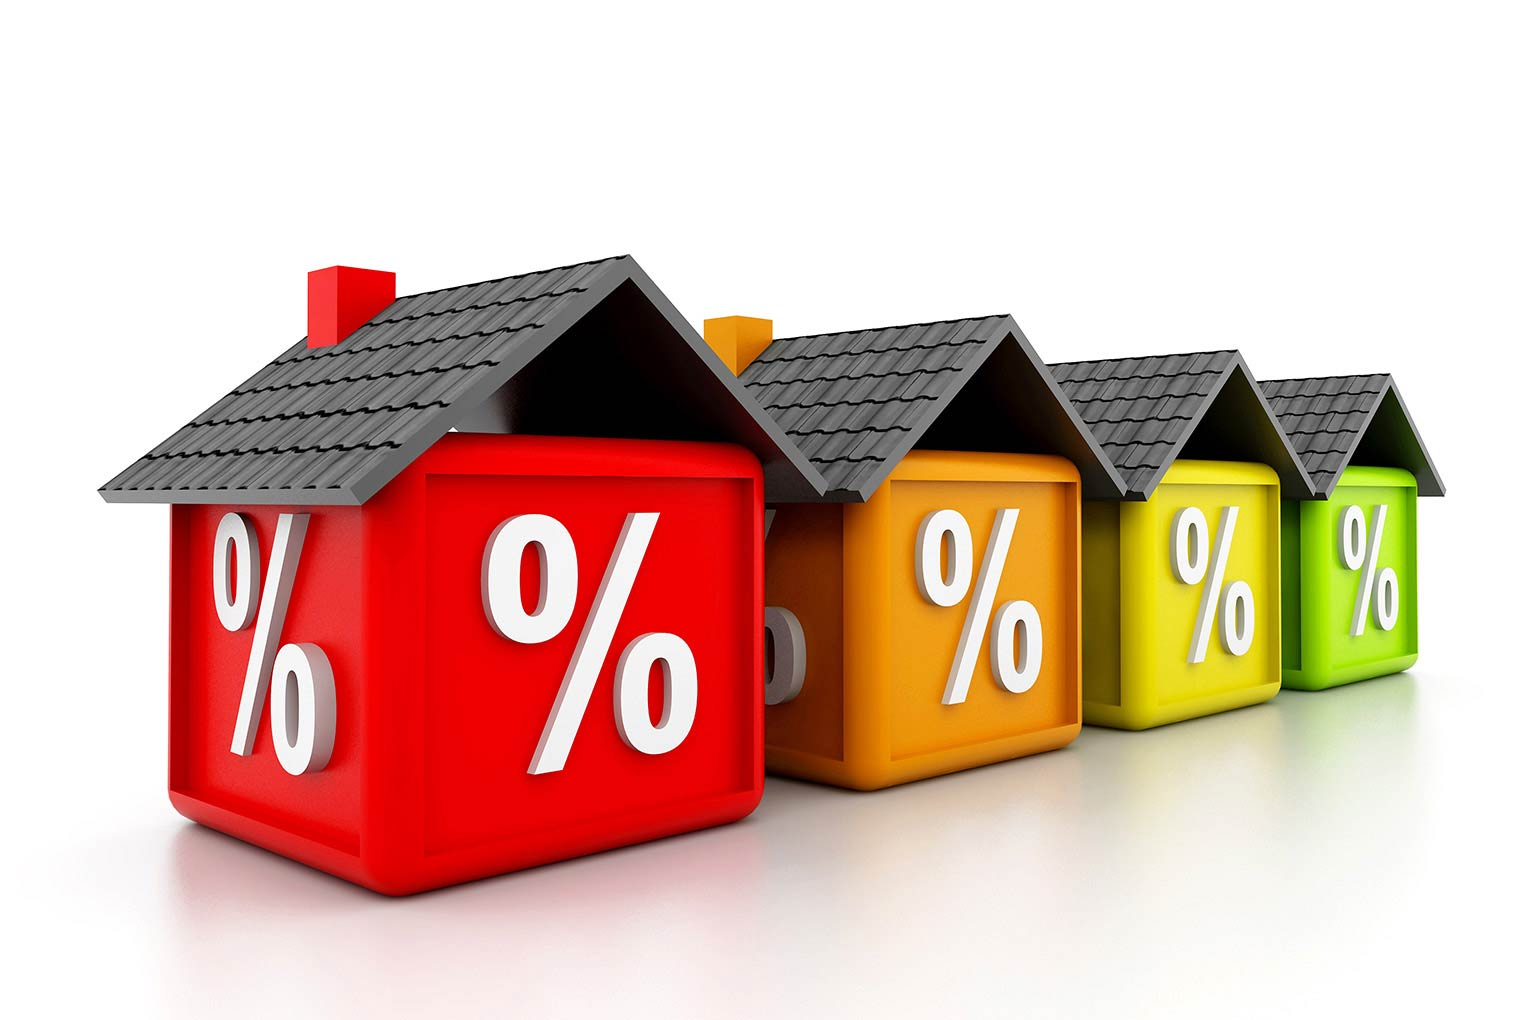 Platform Cuts Rates On 60 90 LTV Mortgages